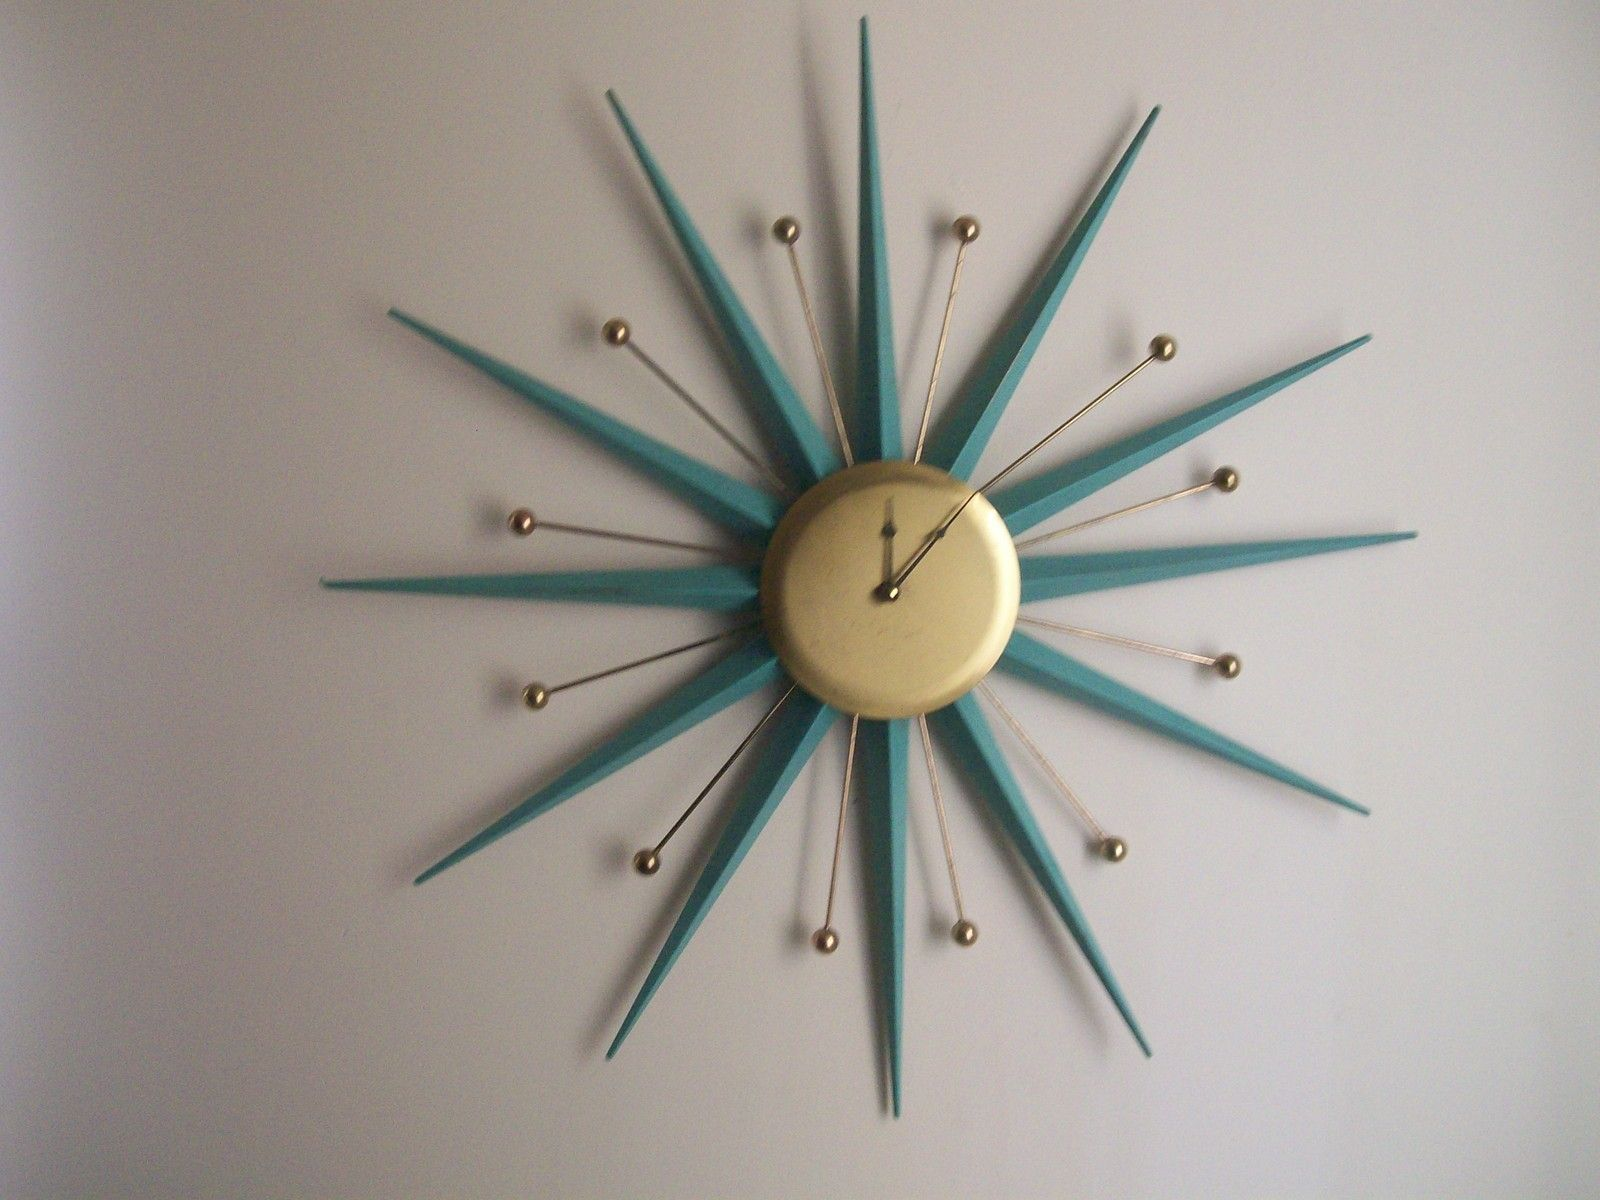 1960s sunburst atomic eames era 30 wall clock wall clocks 1960s sunburst atomic eames era 30 wall clock amipublicfo Images